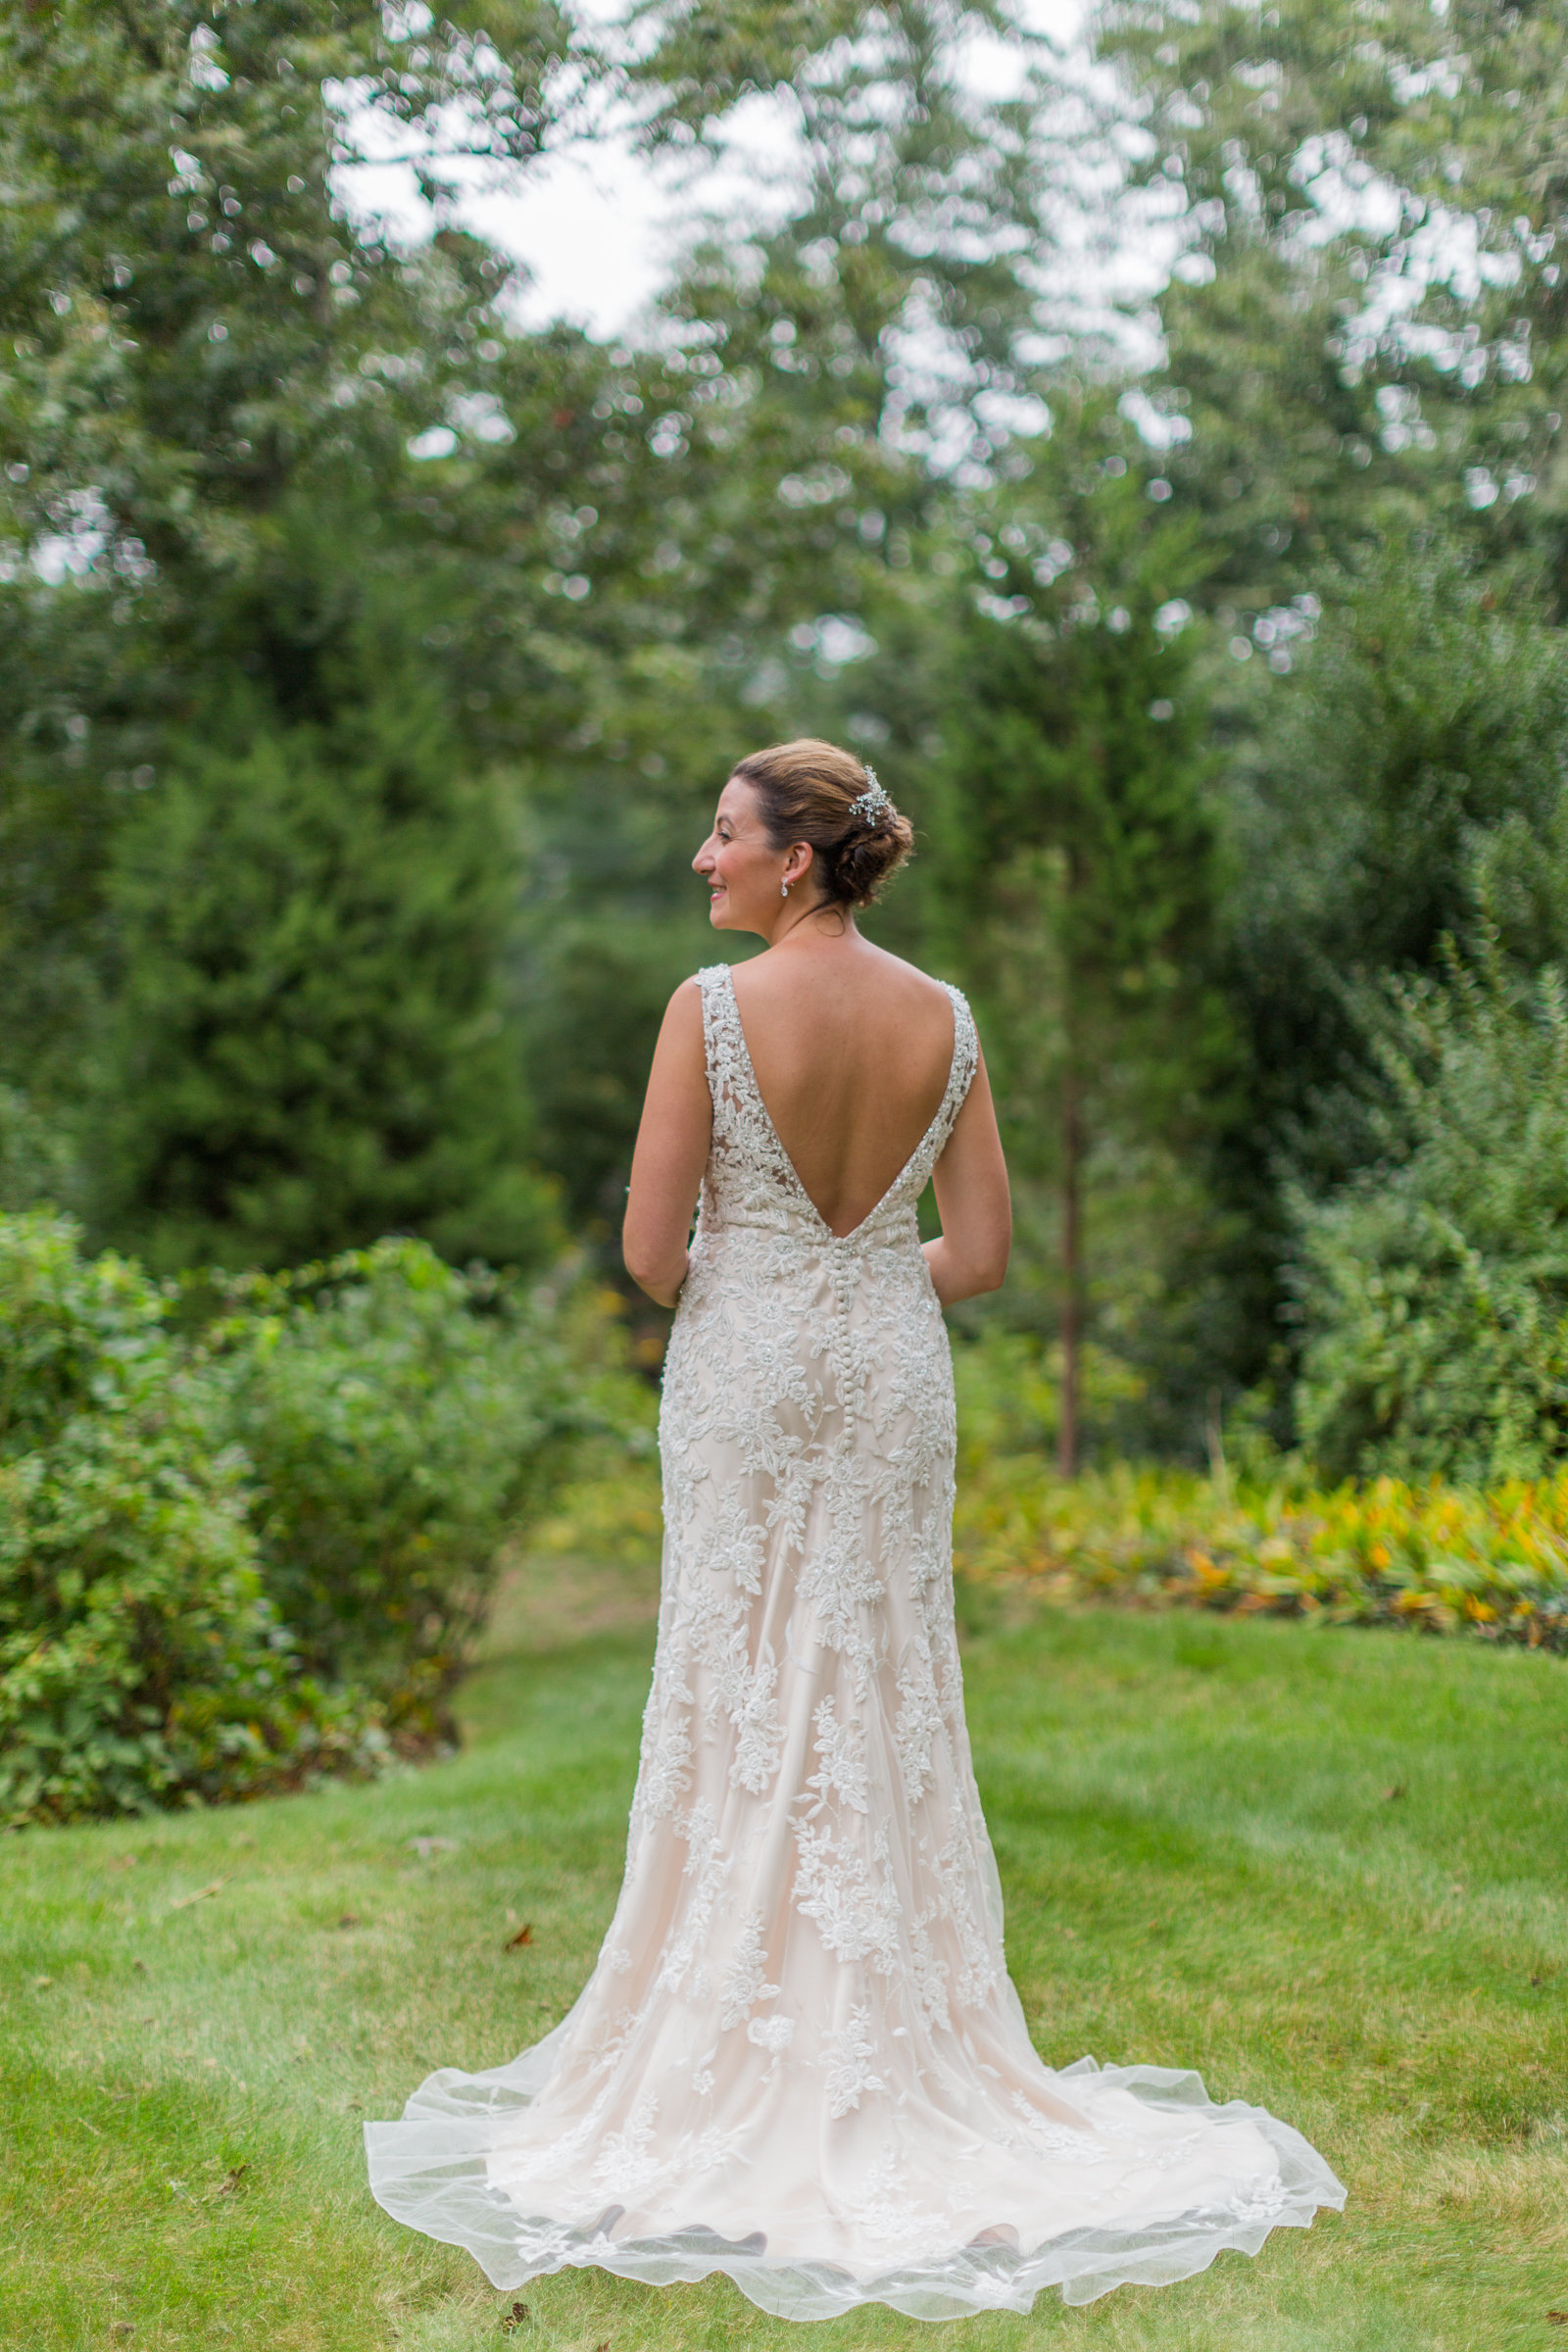 Orleans MA_Cape Cod_Cape Cod Wedding Portraits_Michelle Kaye Photography-4